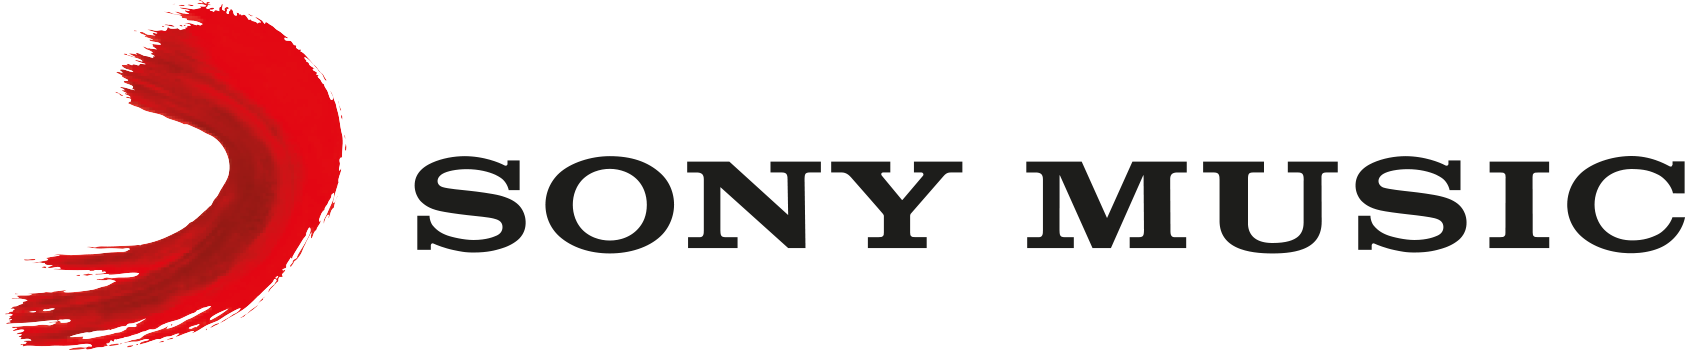 Logo - Sony Music Entertainment